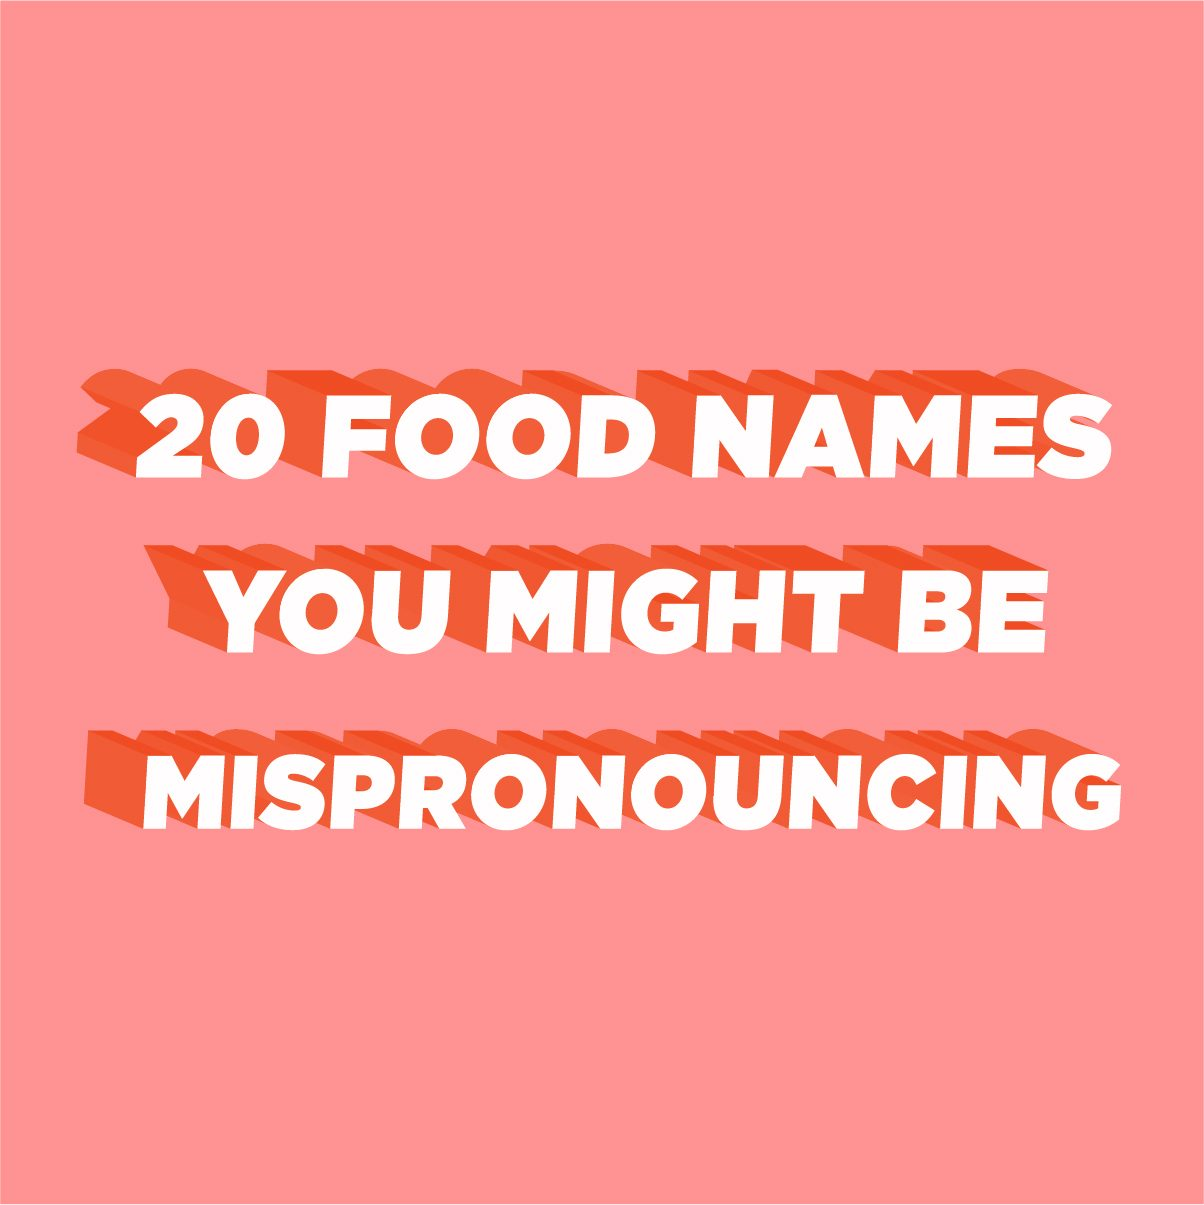 20 Food Names You Might Be Mispronouncing